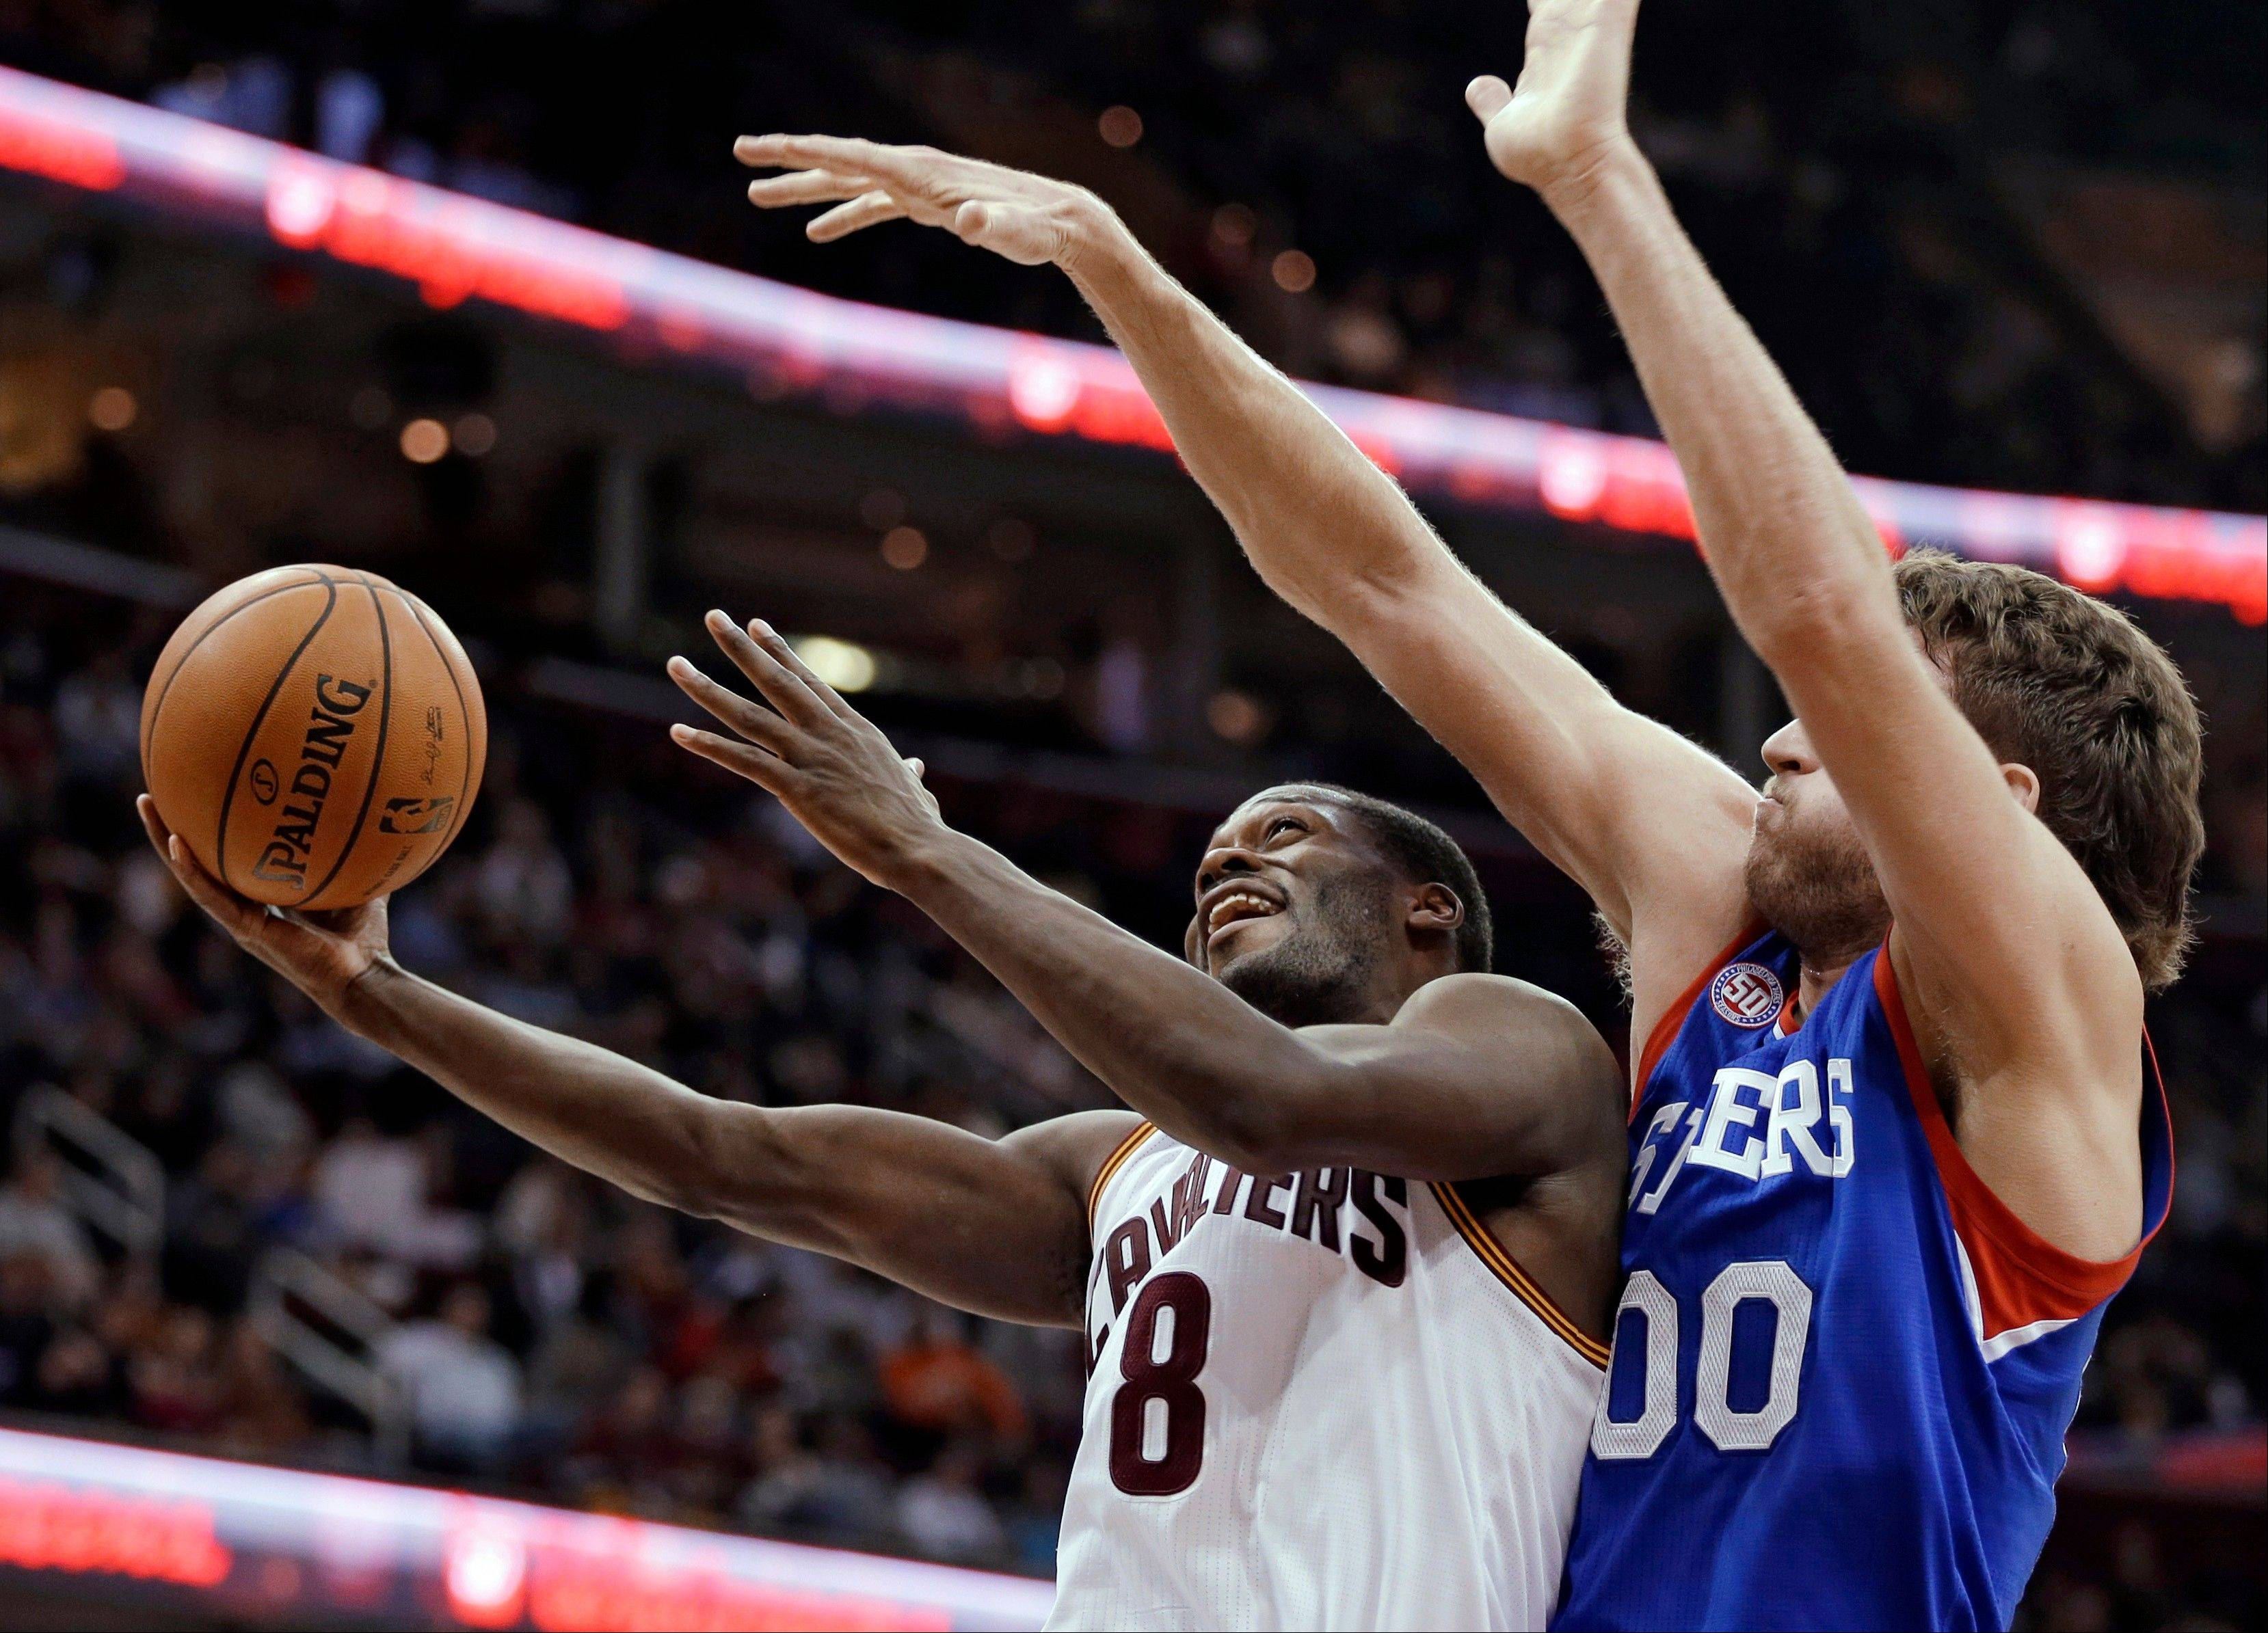 The Cavaliers� Jeremy Pargo shoots against Philadelphia�s Spencer Hawes in the fourth quarter Wednesday in Cleveland.